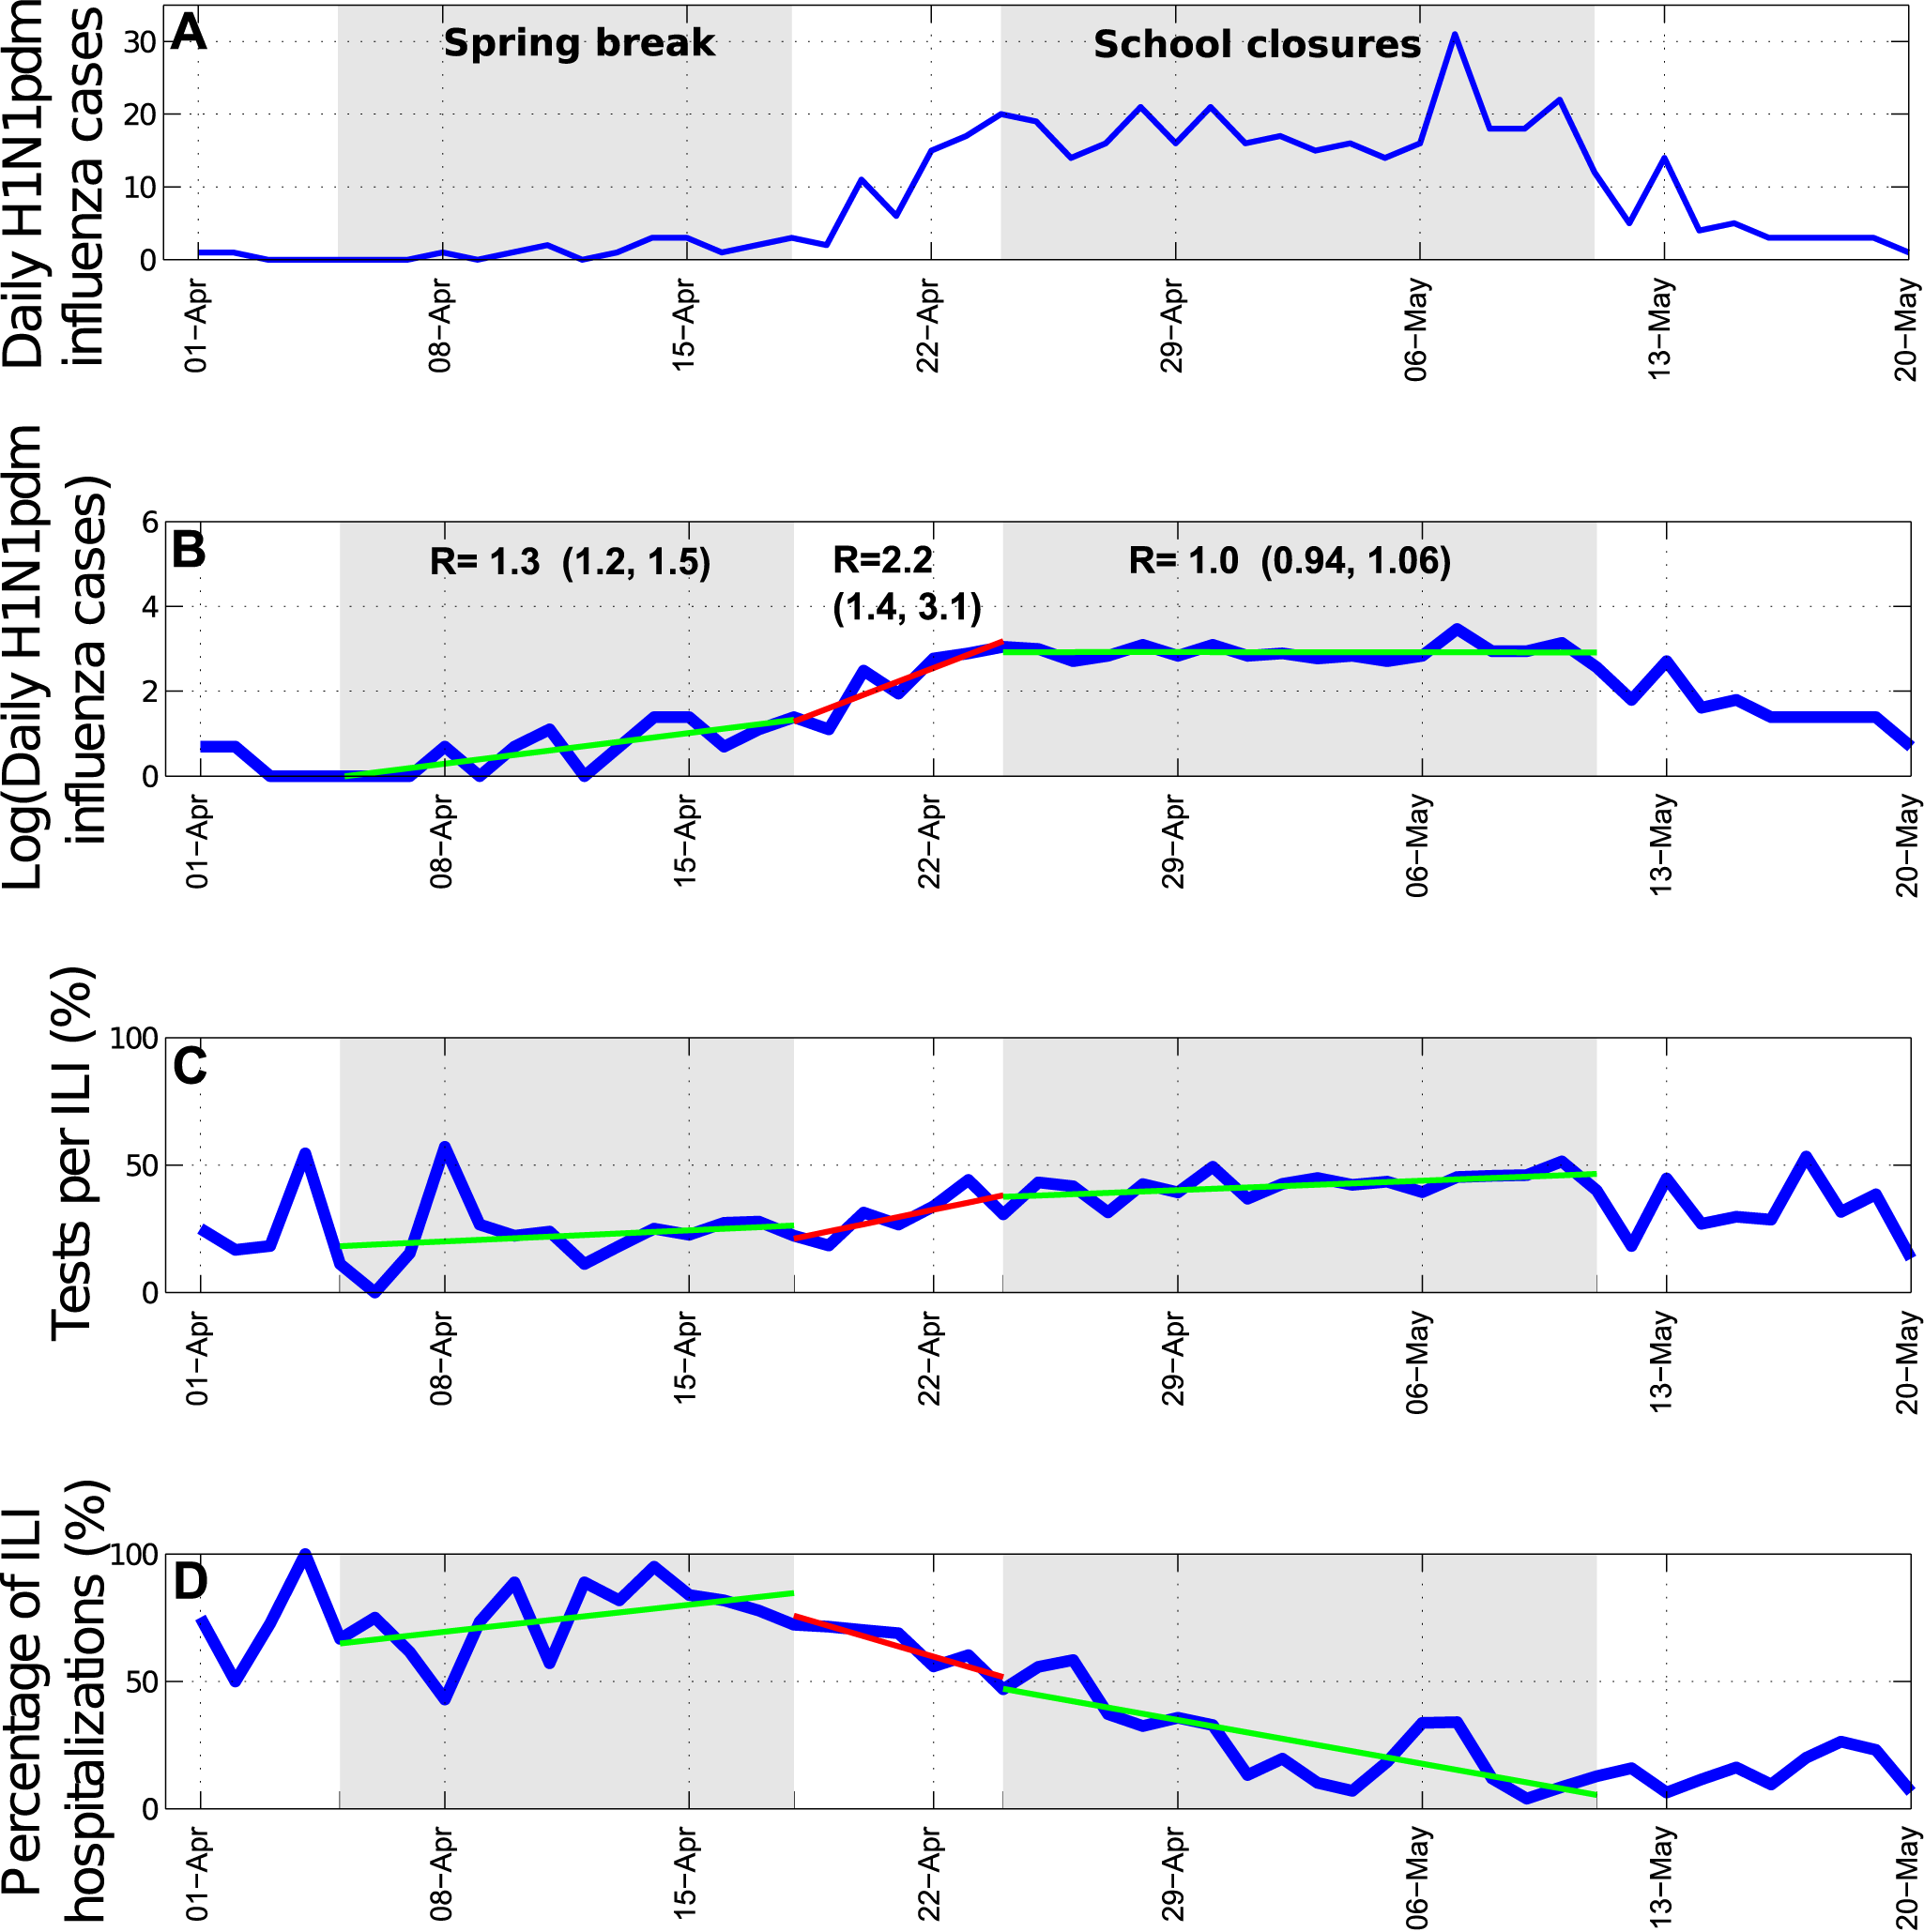 Trends in influenza pandemic patterns and school activities.